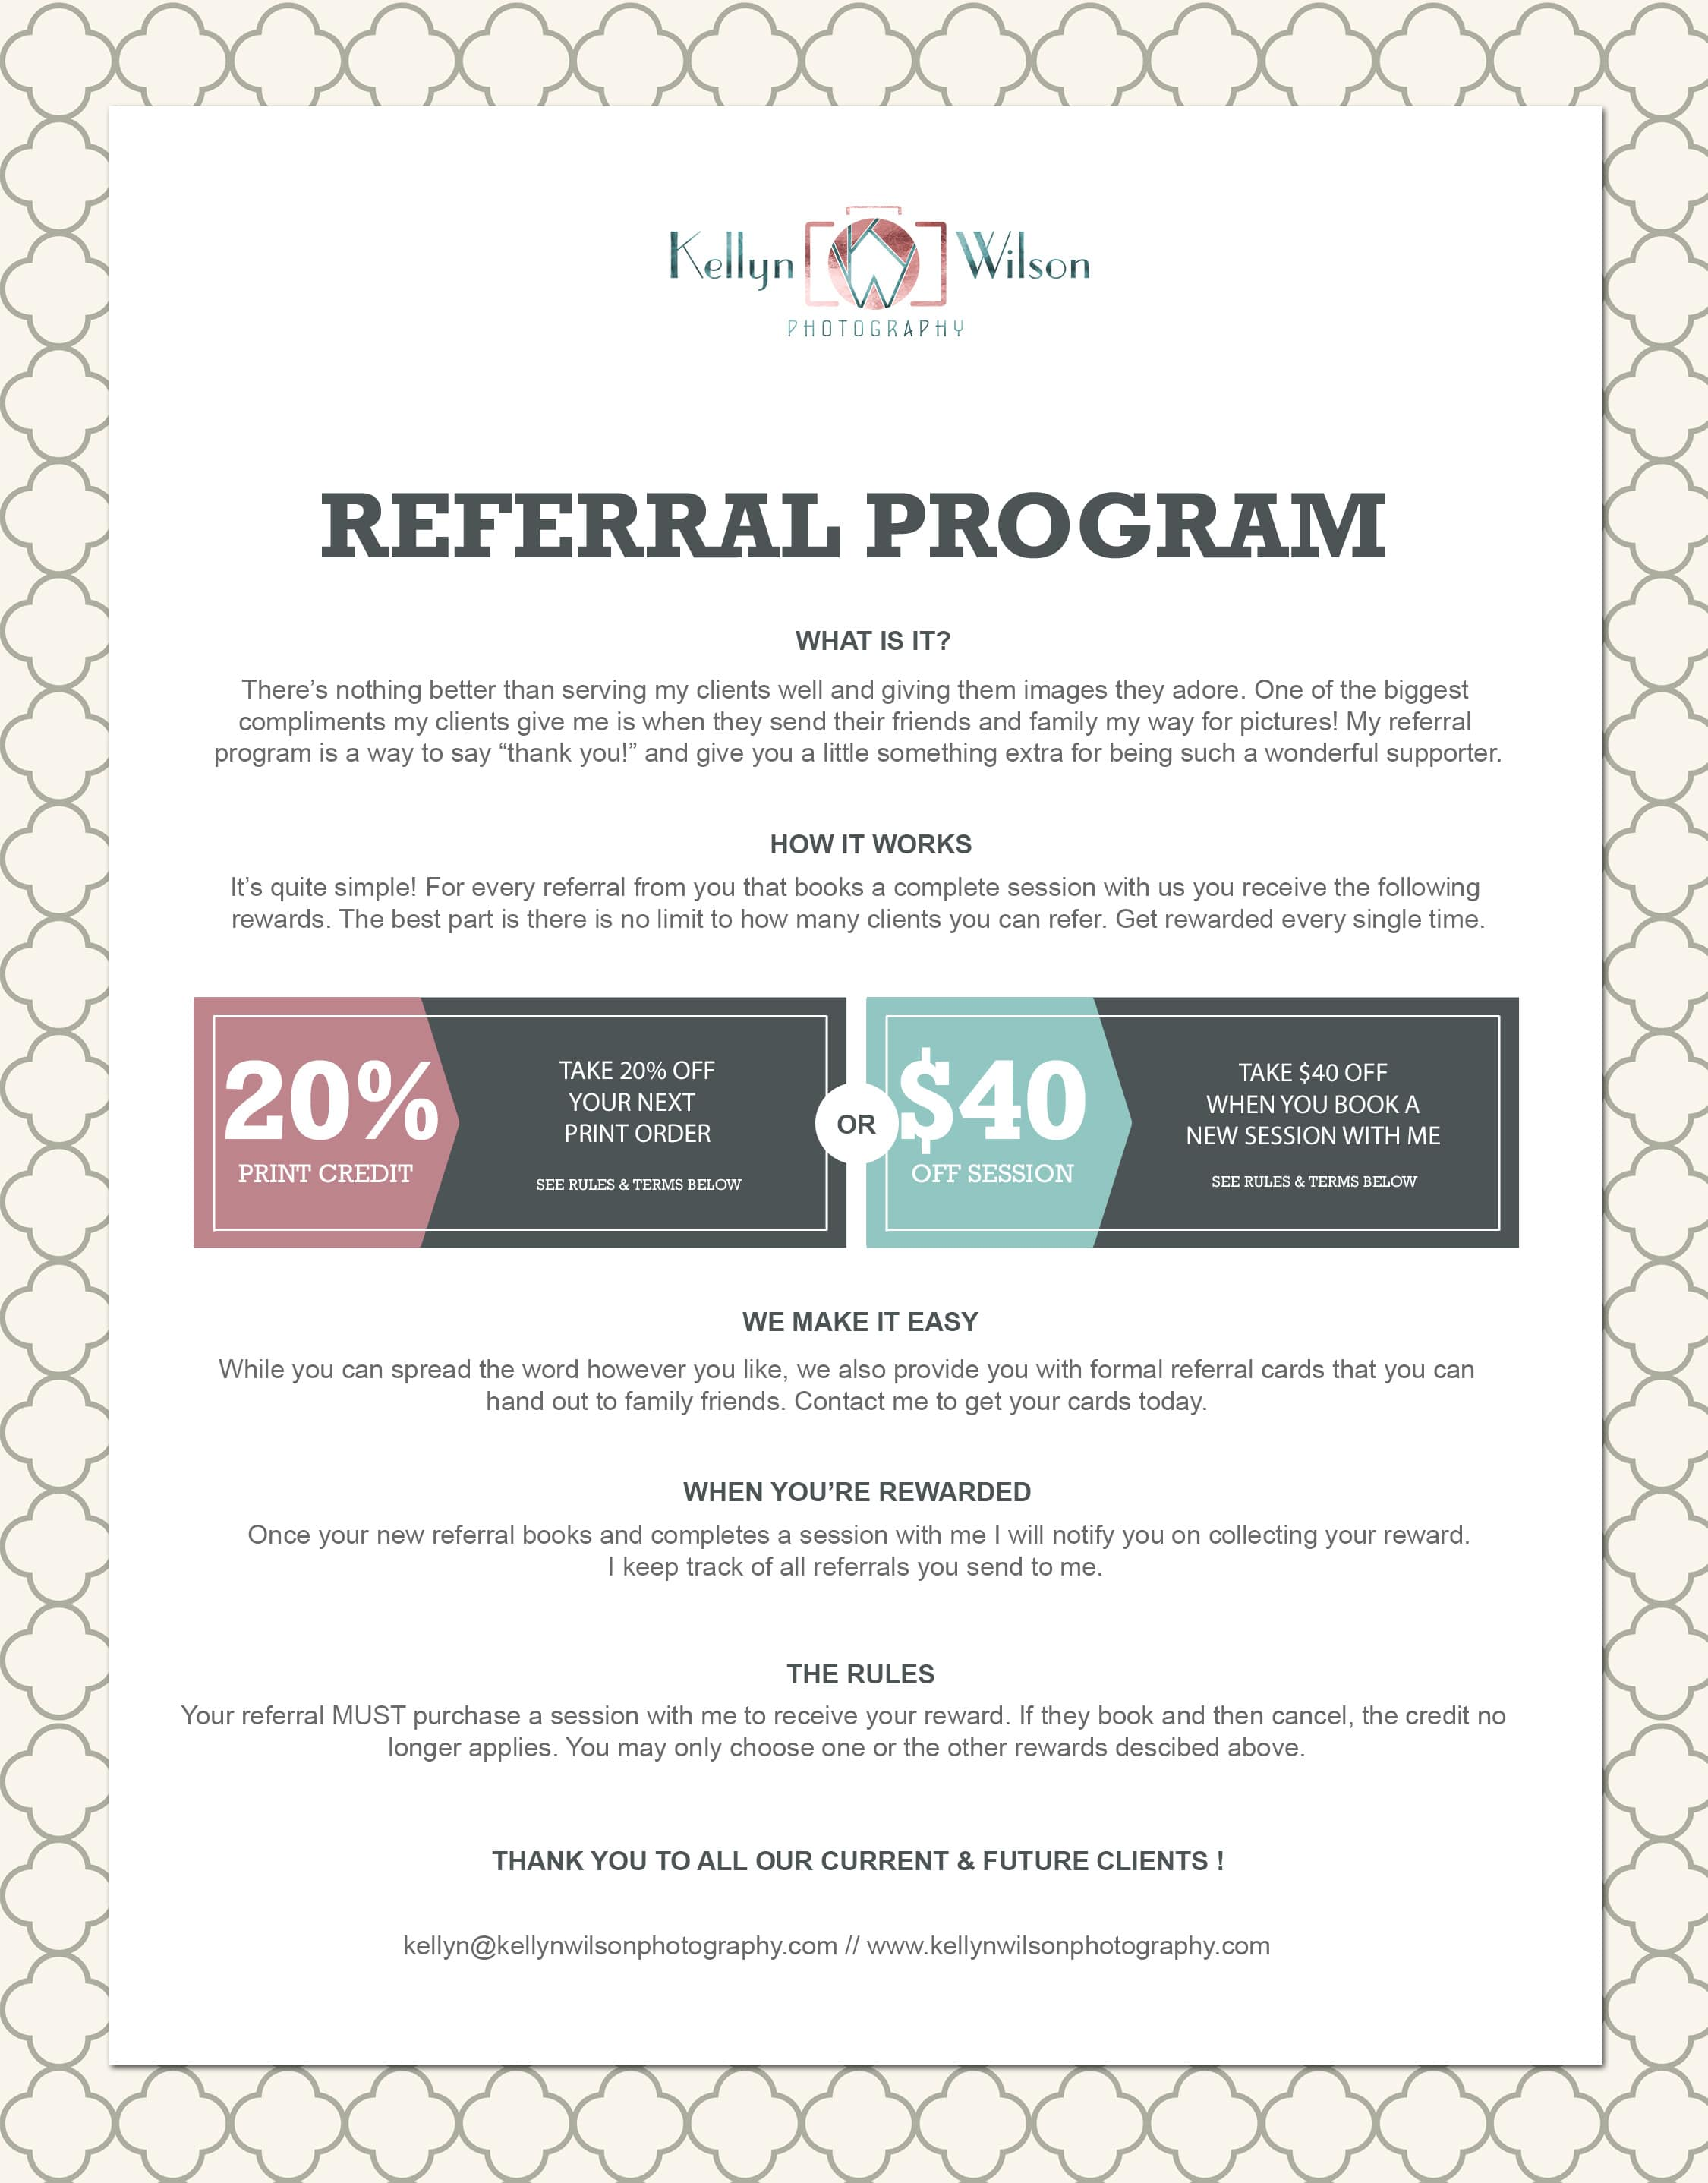 Kellyn Wilson Photography | Referral Program